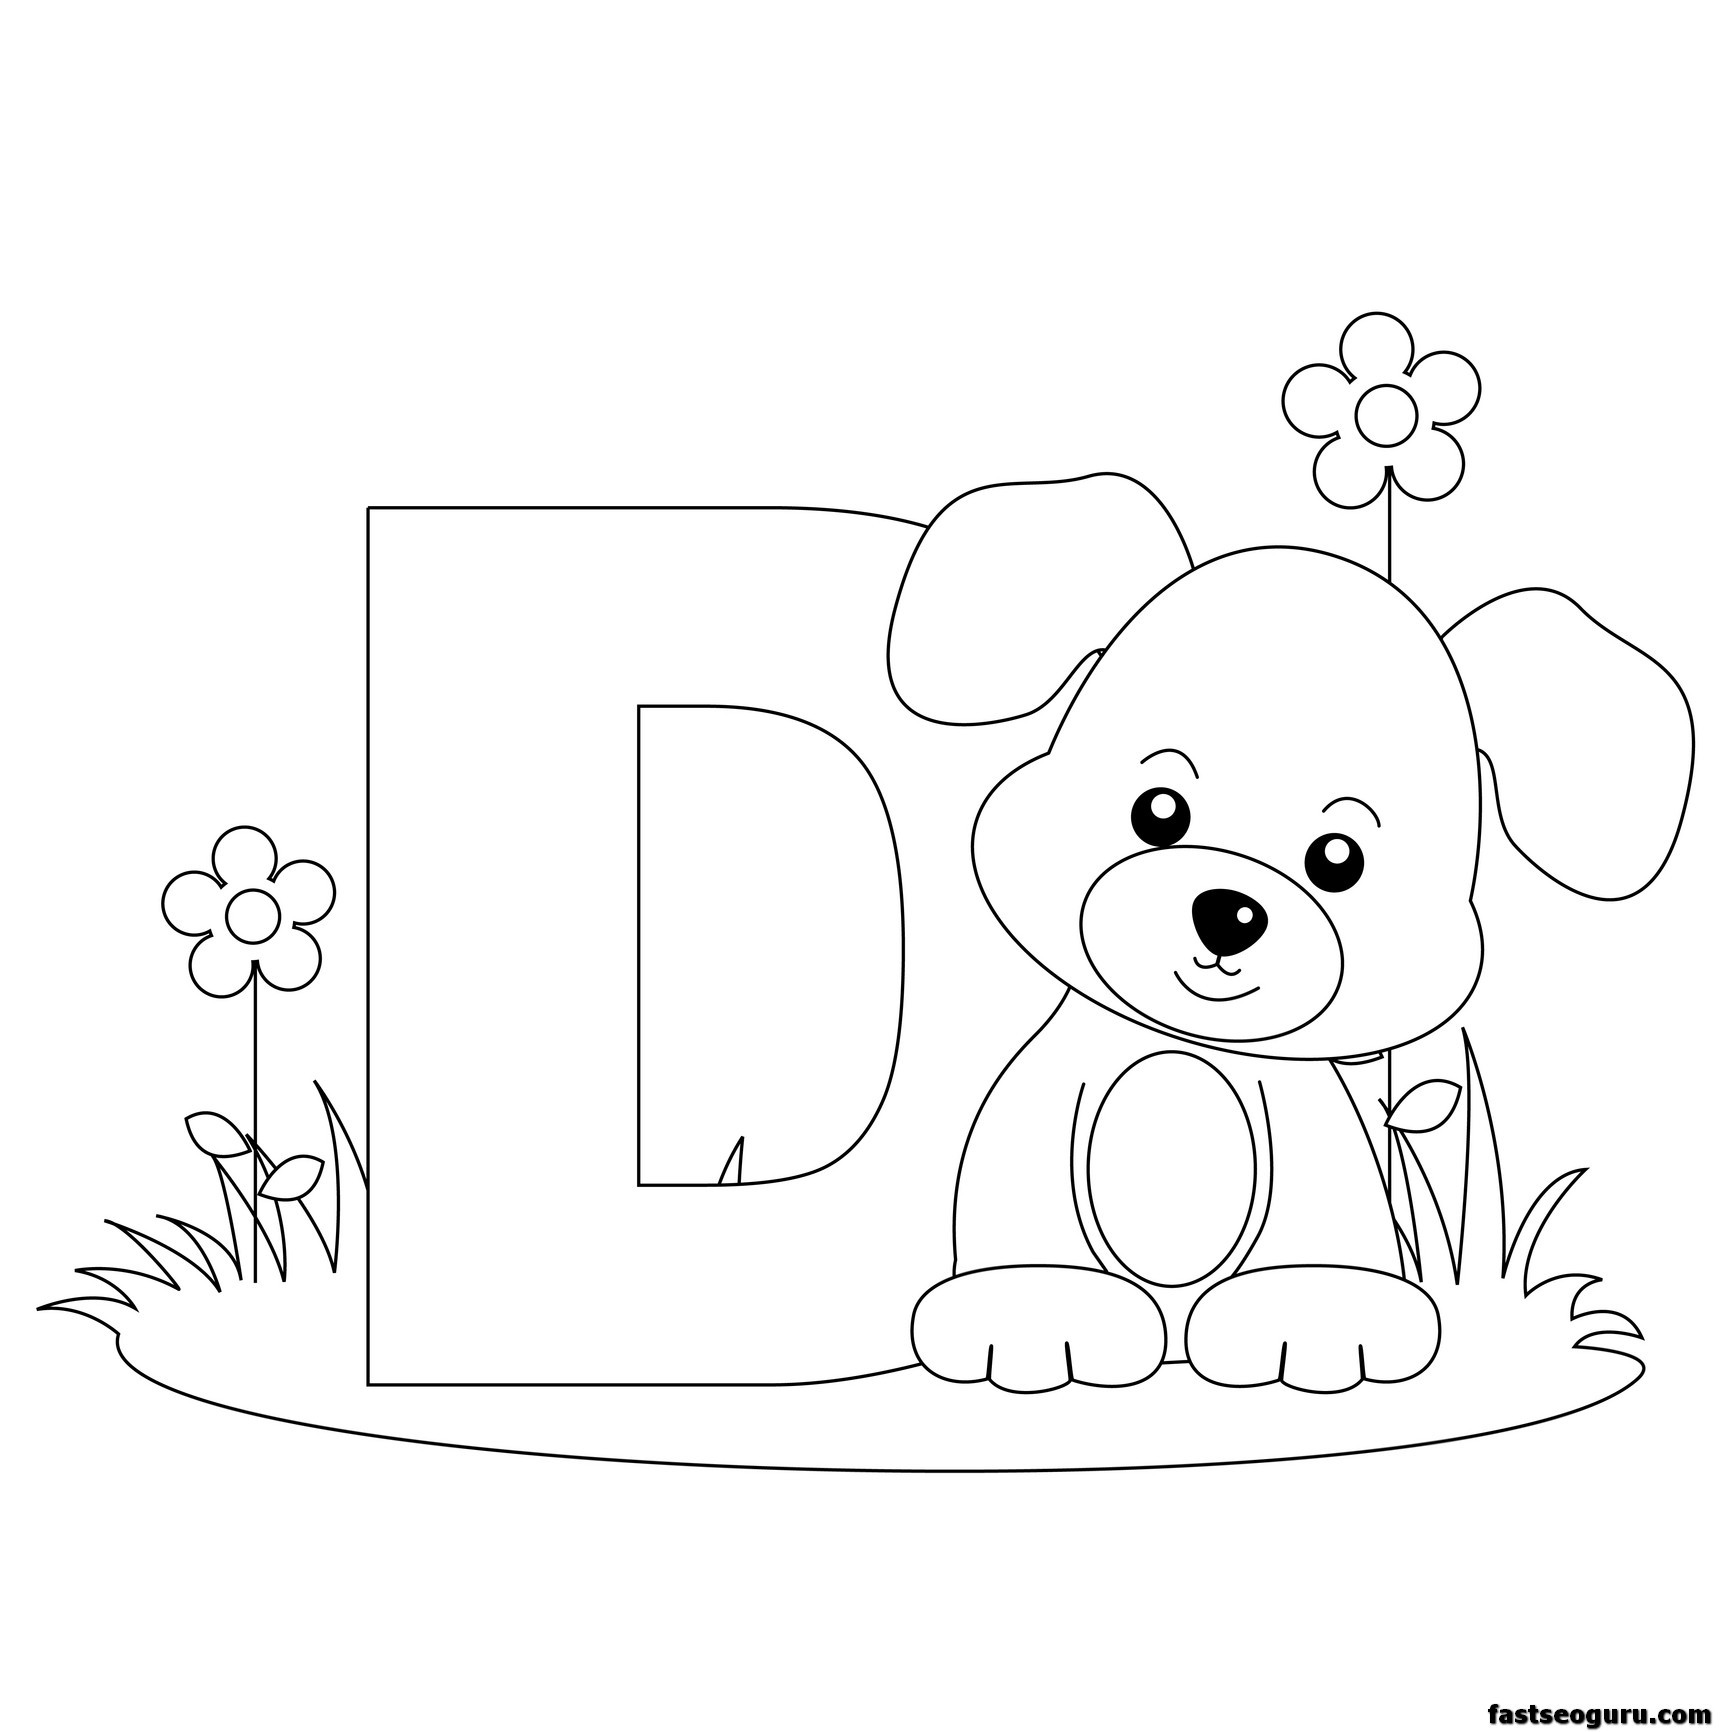 d for dog coloring pages - photo #29